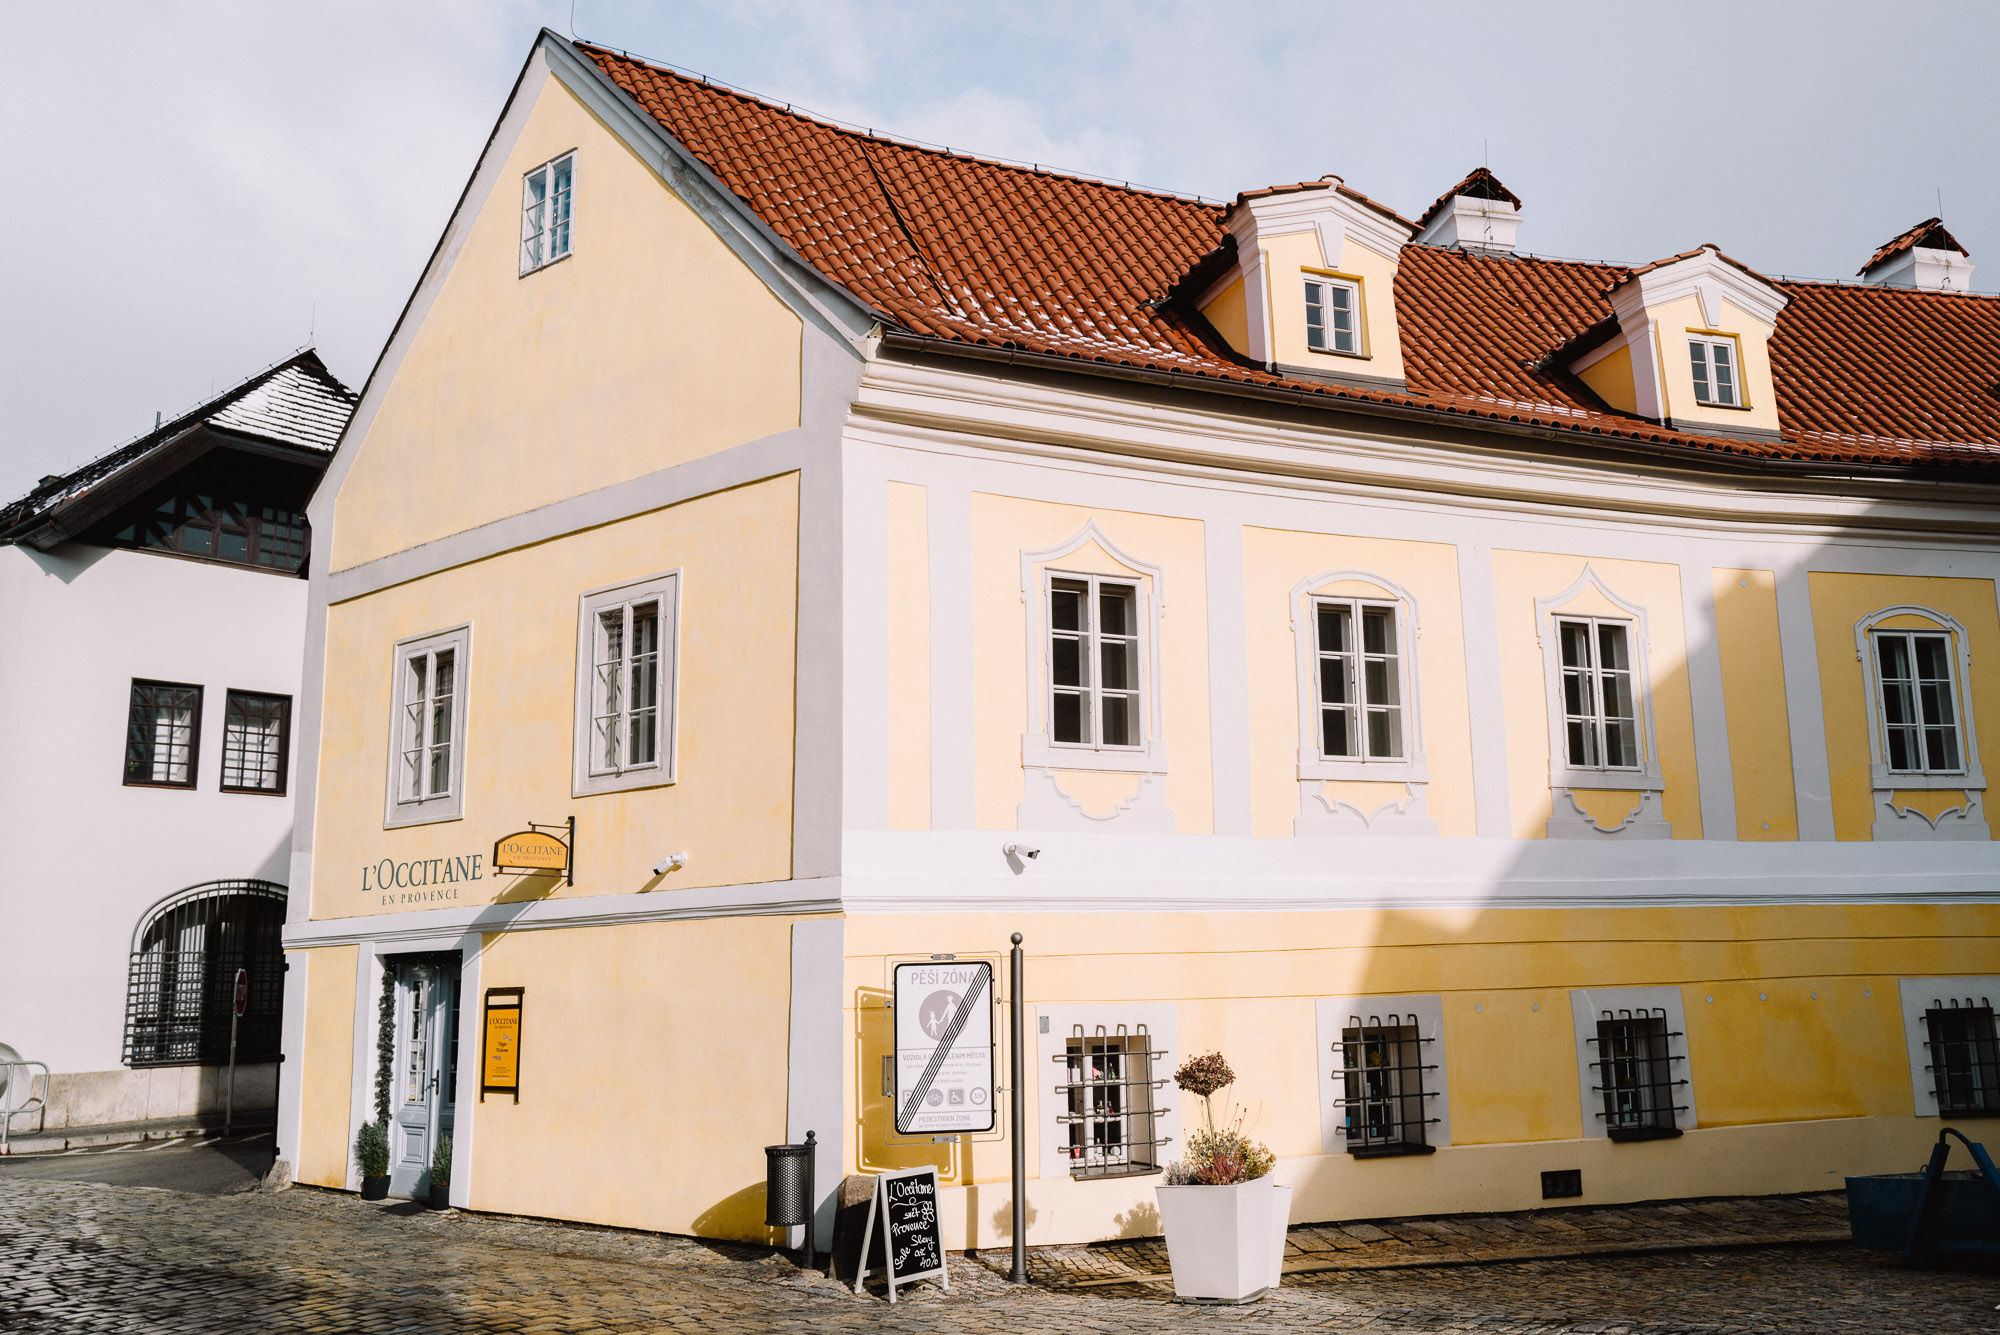 Bright yellow building in Cesky, Krumlov